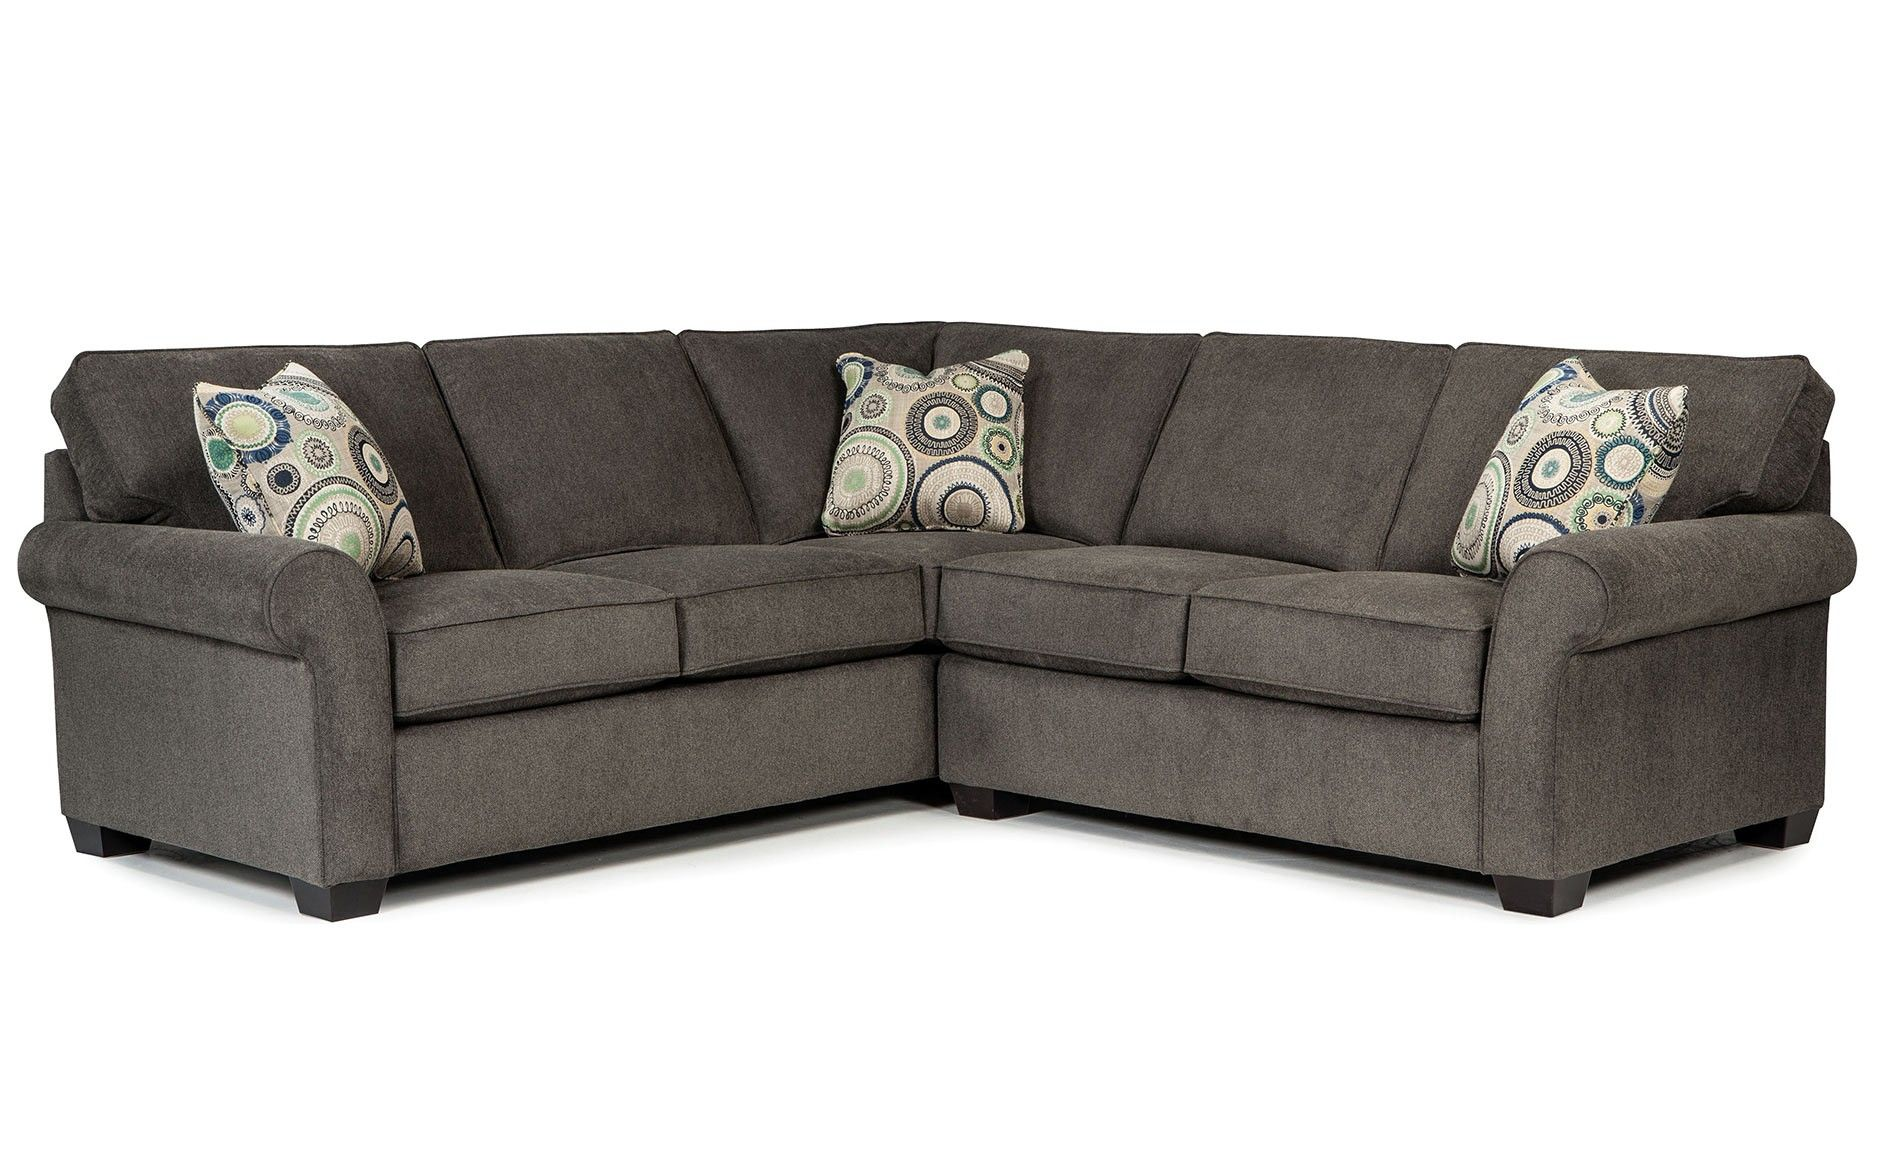 Broyhill Ethan 2 Piece Sectional Home Broyhill